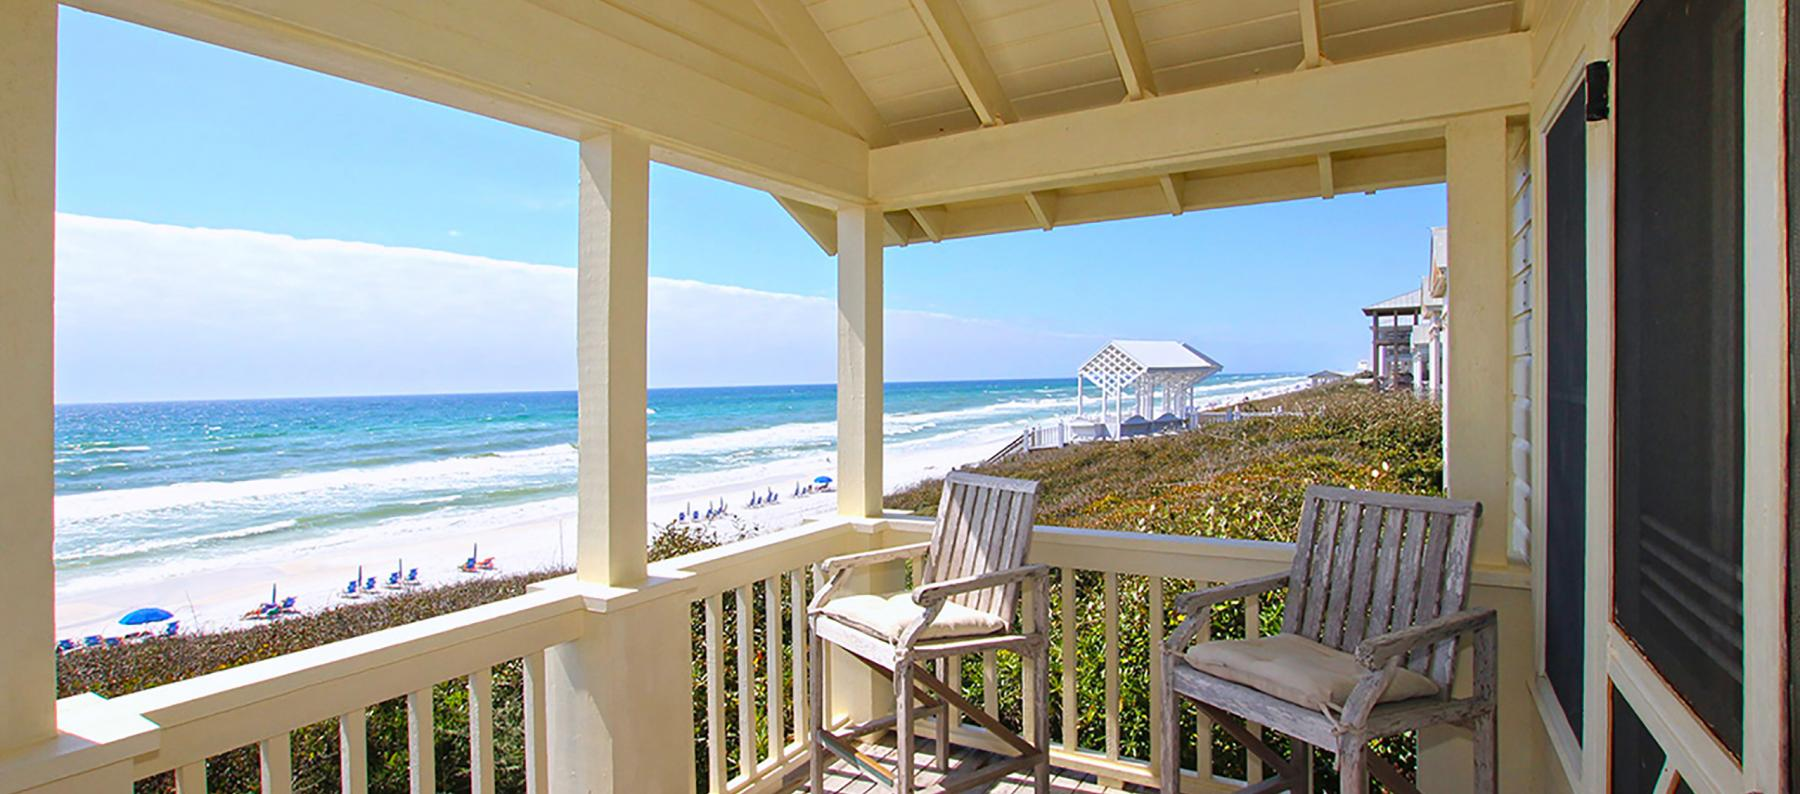 Southern Exposure cottage in Seaside, Florida